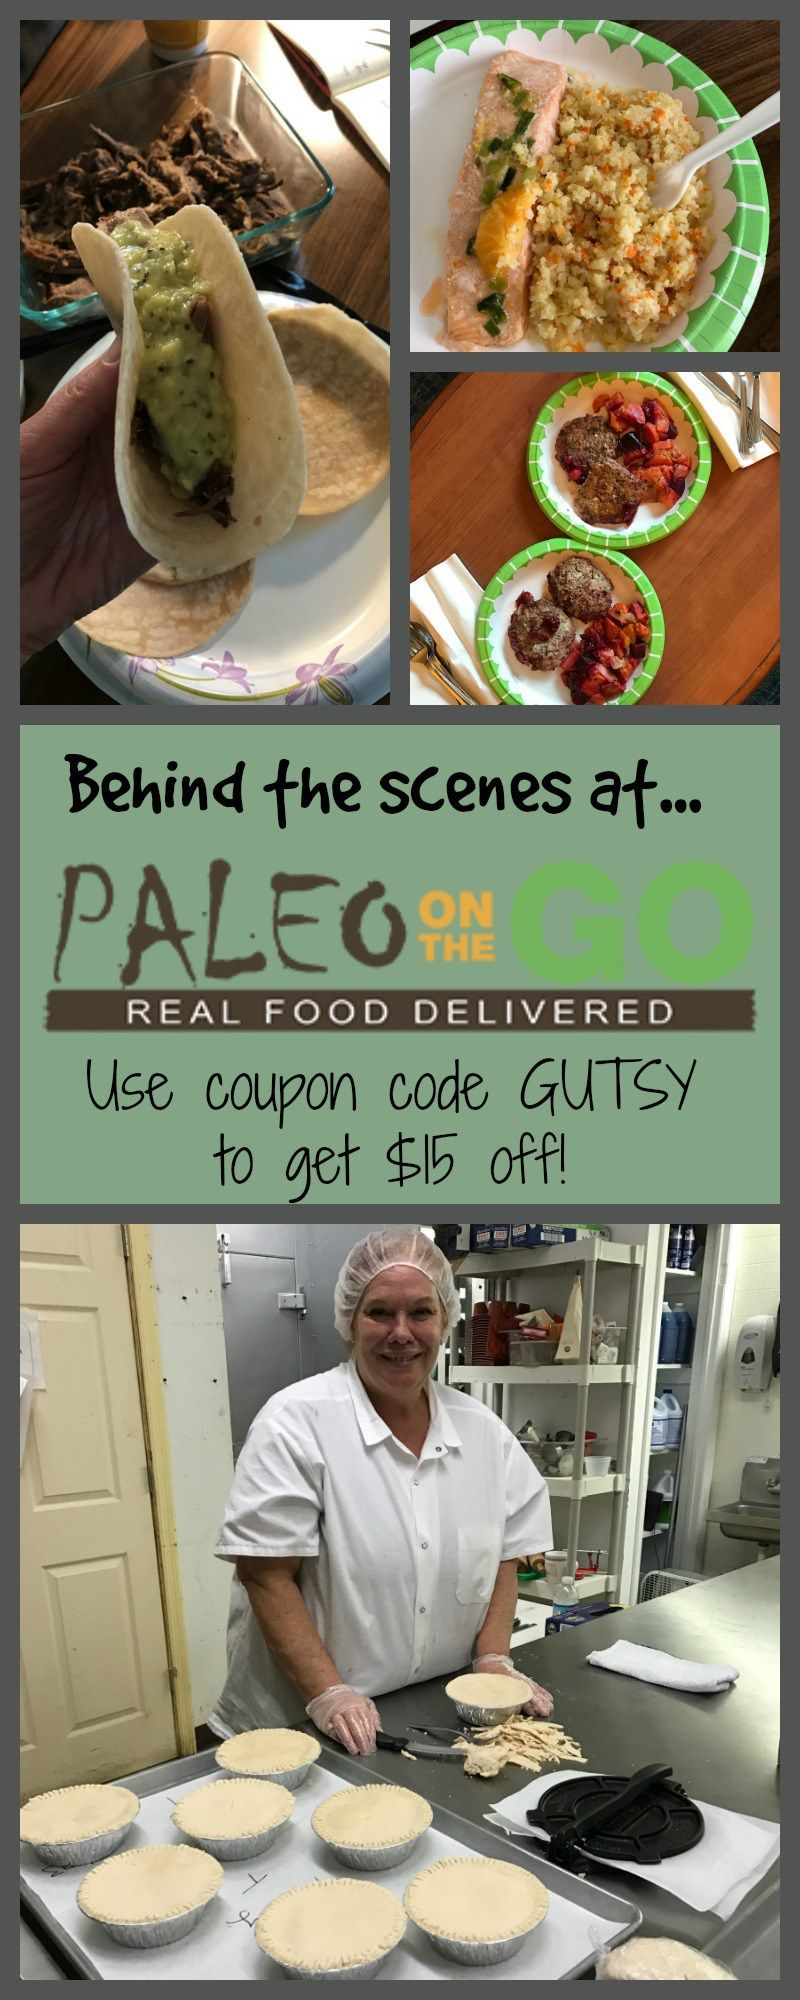 Paleo On the Go - My favorite AIP frozen meals! - Gutsy By Nature